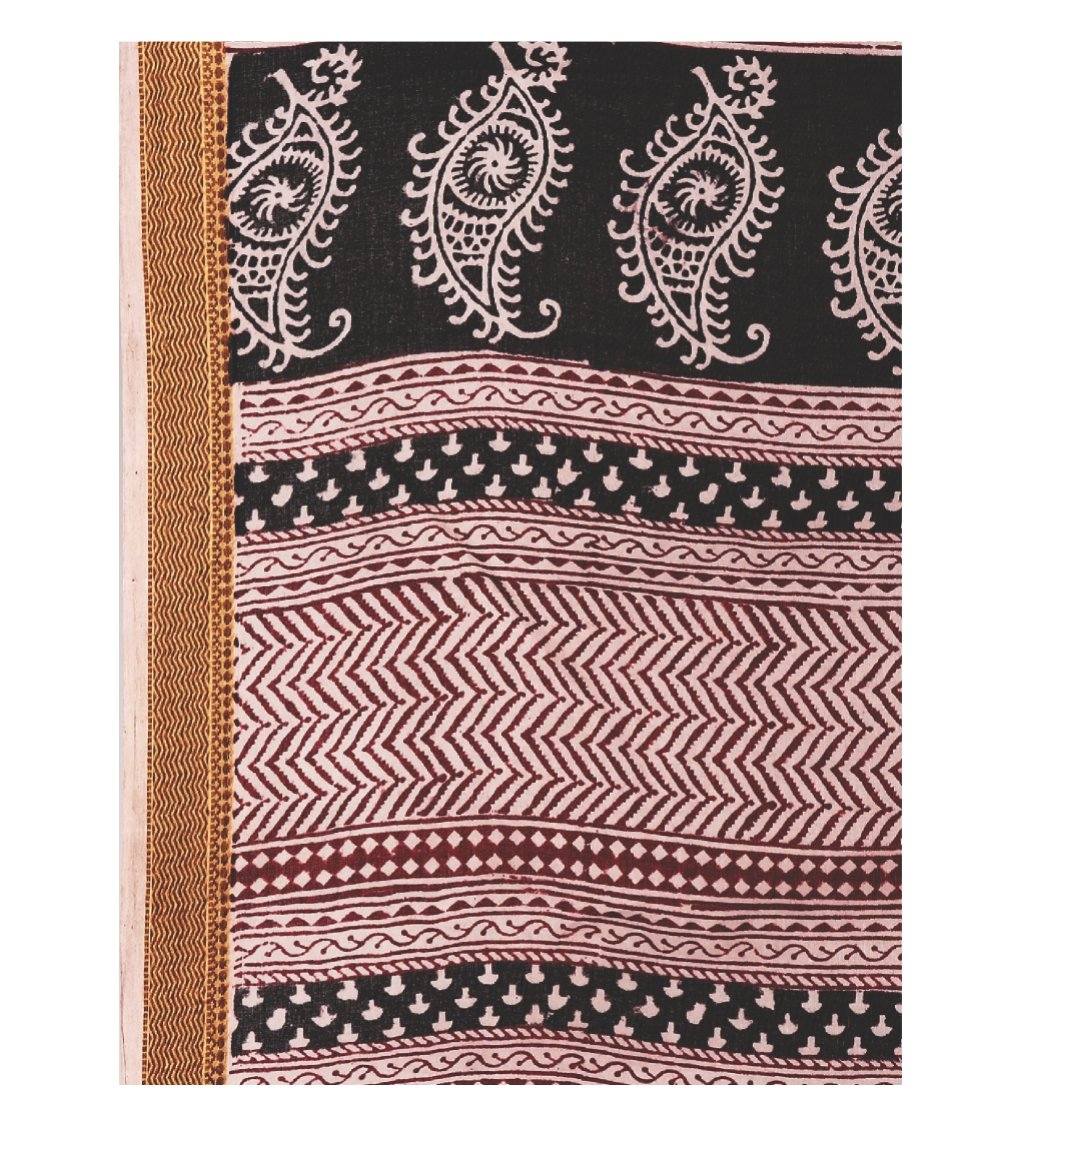 Black Cotton Hand Block Bagh Print Handcrafted Saree-Saree-Kalakari India-ZIBASA0054-Bagh, Cotton, Geographical Indication, Hand Blocks, Hand Crafted, Heritage Prints, Natural Dyes, Sarees, Sustainable Fabrics-[Linen,Ethnic,wear,Fashionista,Handloom,Handicraft,Indigo,blockprint,block,print,Cotton,Chanderi,Blue, latest,classy,party,bollywood,trendy,summer,style,traditional,formal,elegant,unique,style,hand,block,print, dabu,booti,gift,present,glamorous,affordable,collectible,Sari,Saree,printed, ho